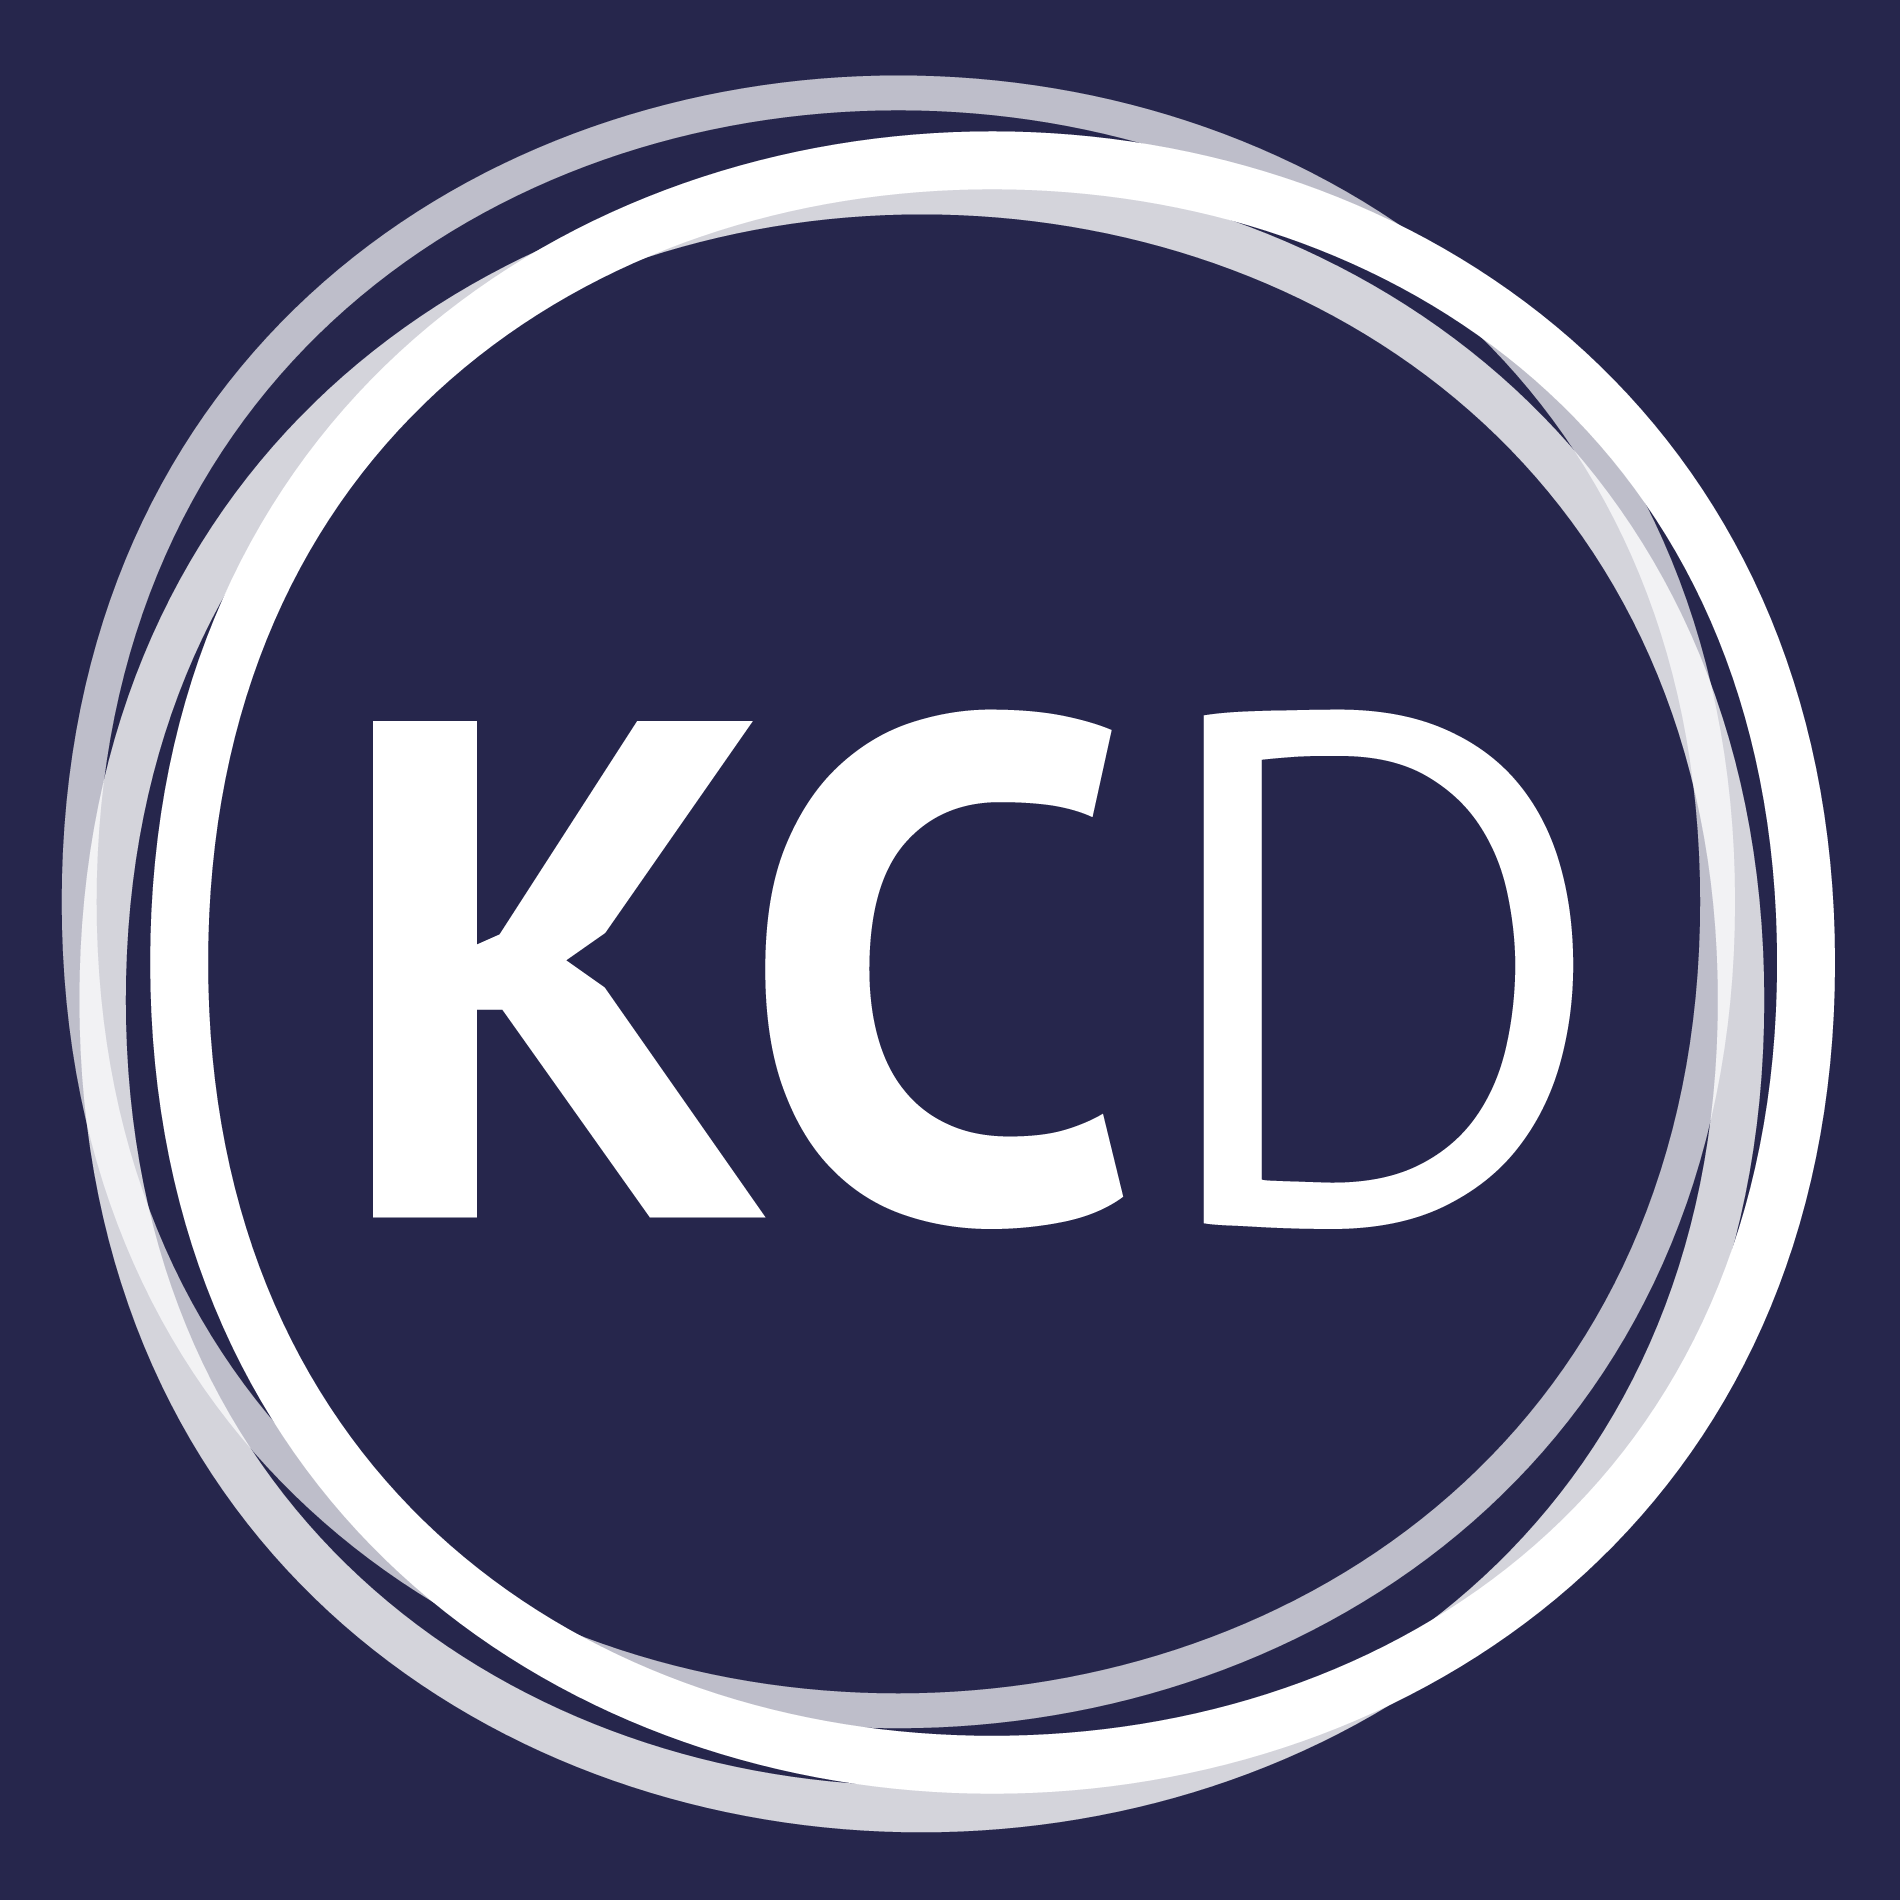 Kcd square   white on blue